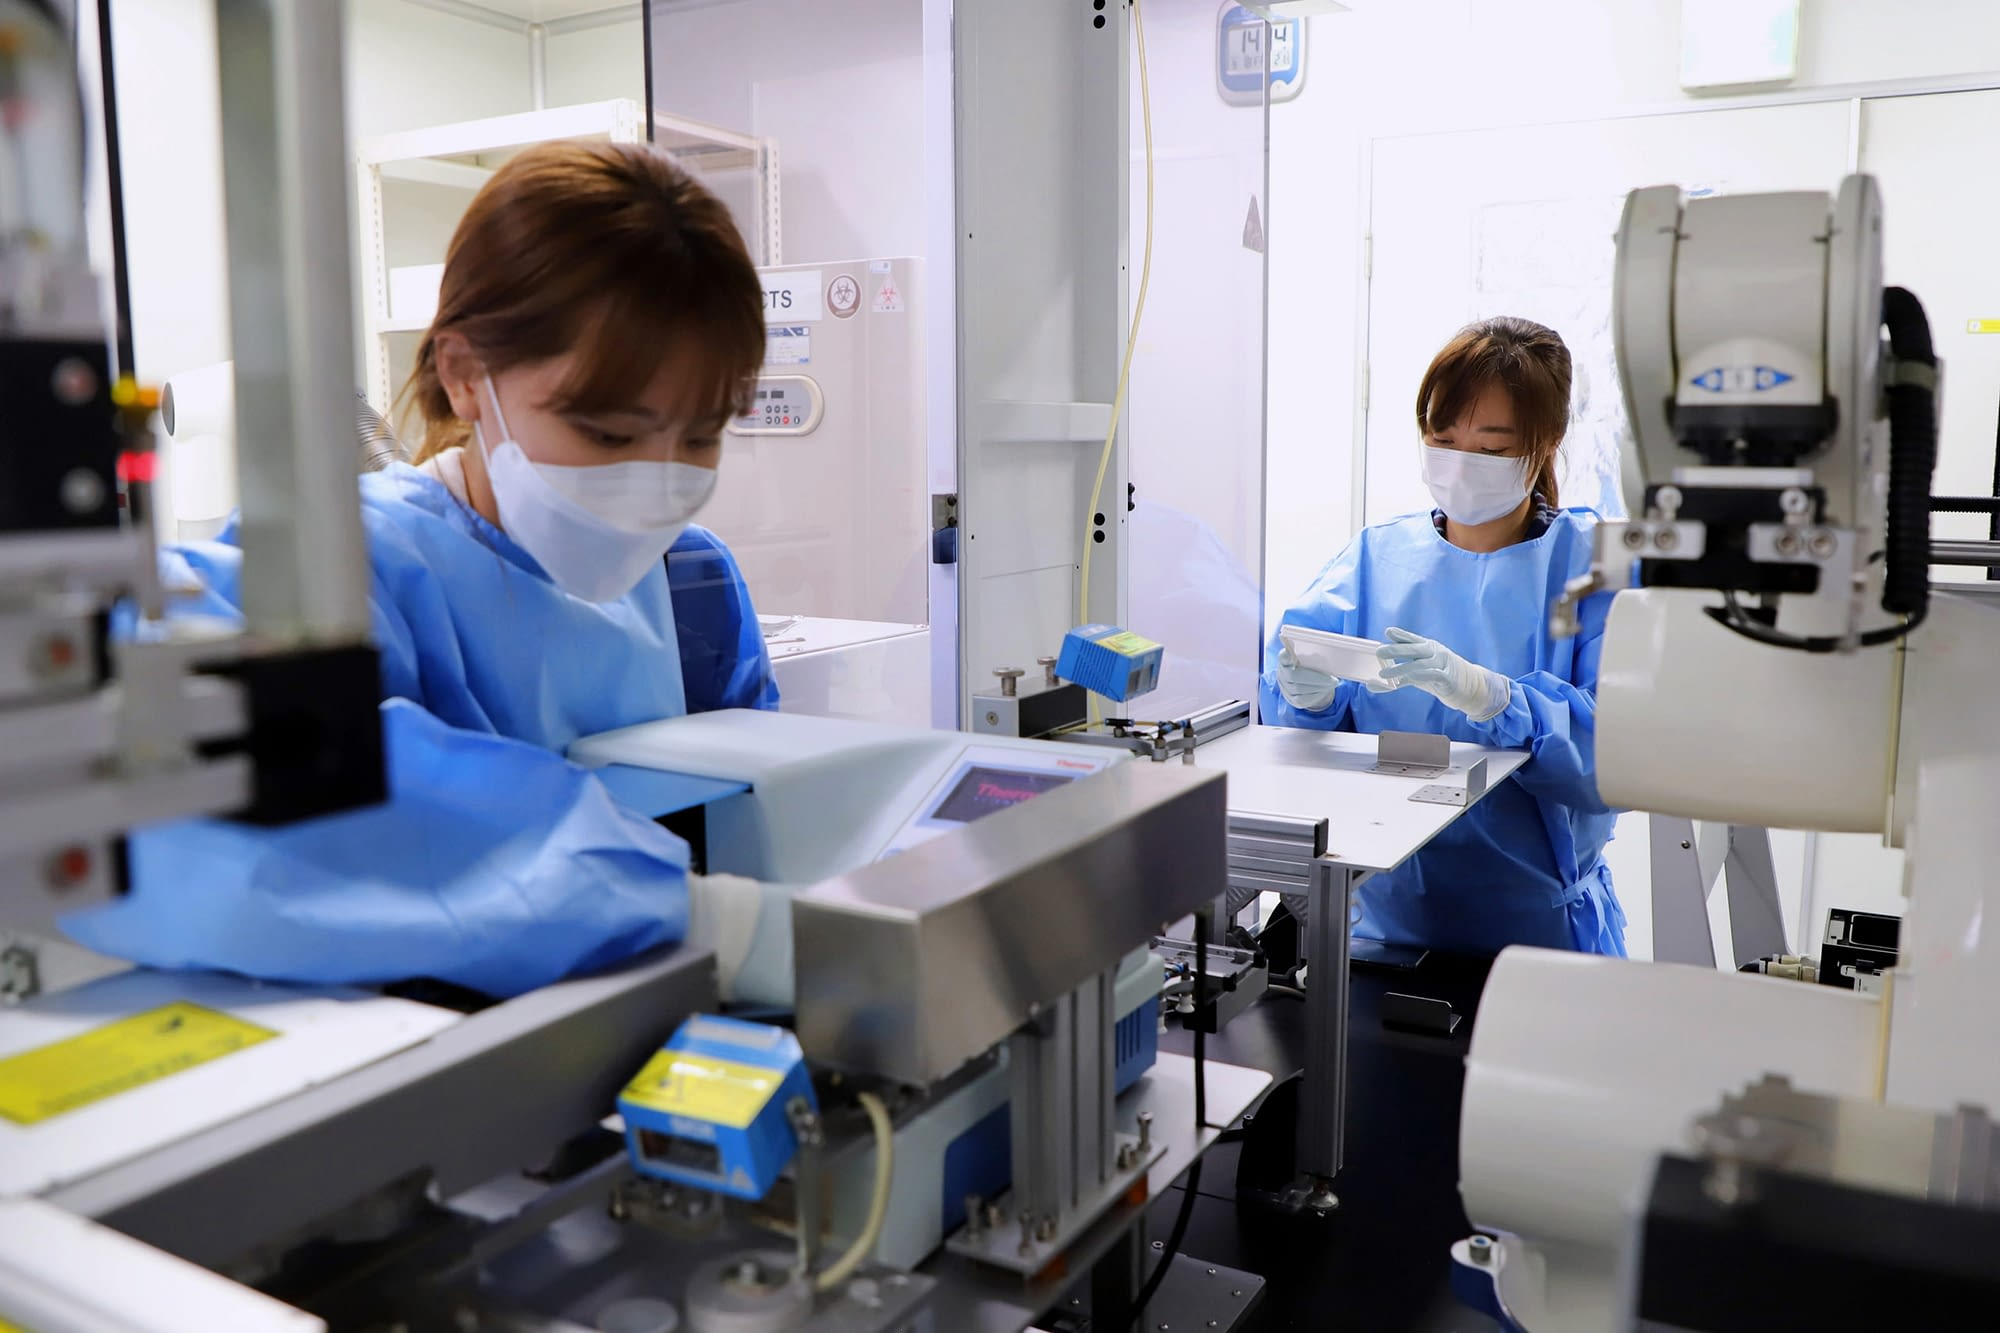 Researchers in operation of the cell-based screening platform in the biosafety level-2(BSL-2) laboratory